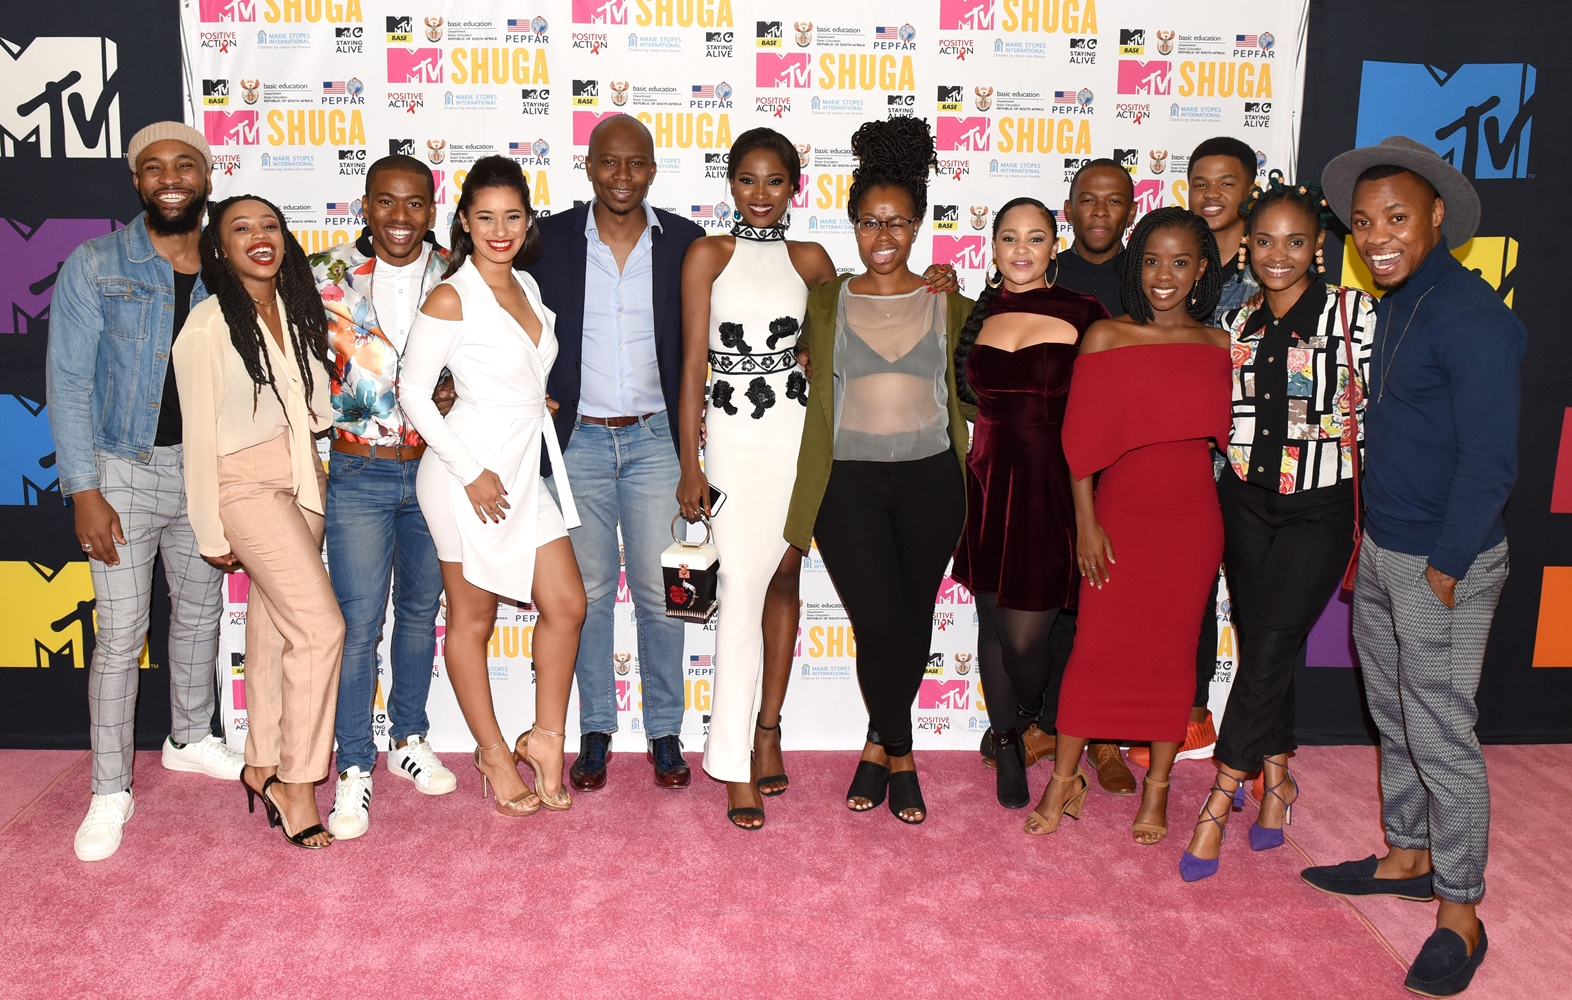 MTV SHUGA NAIJA PREMIERES IN SOUTH AFRICA